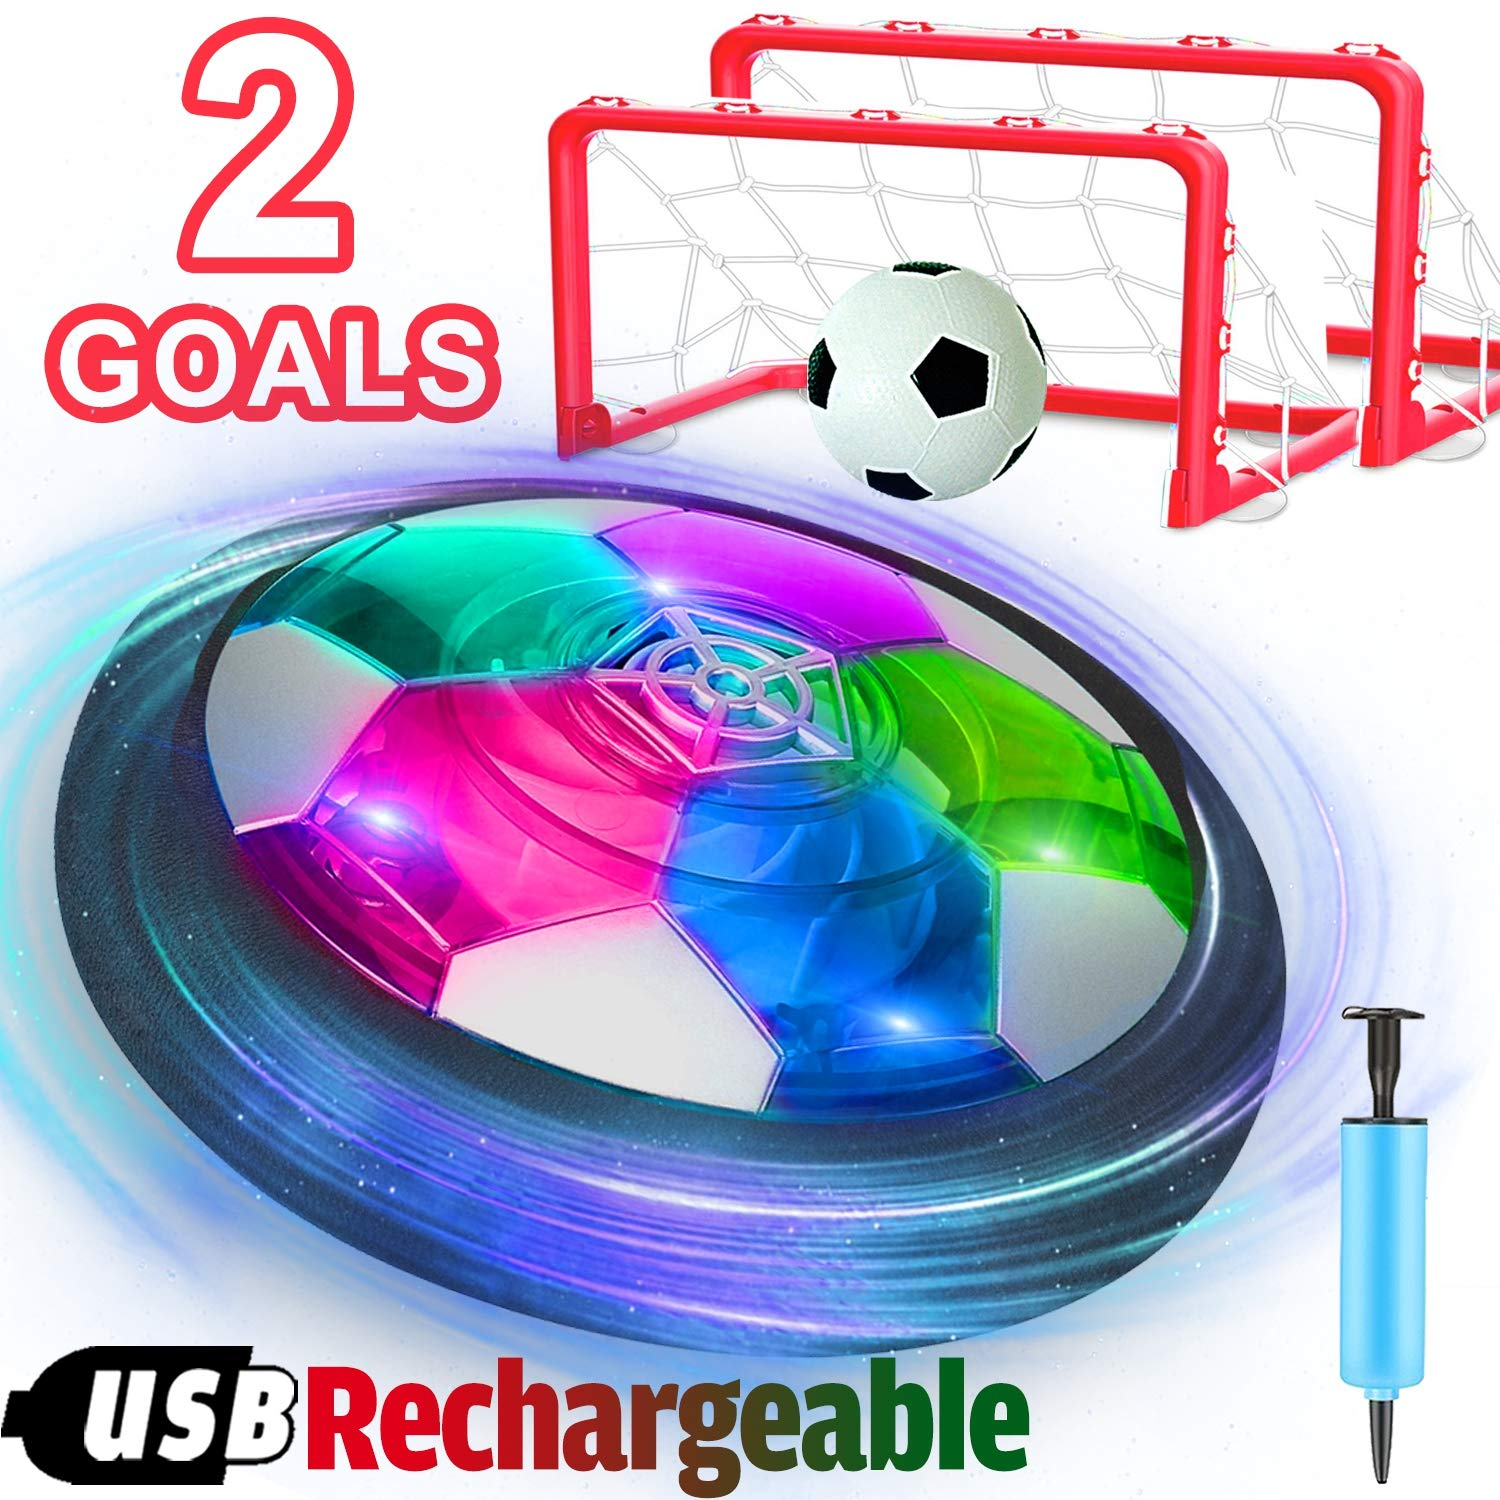 Kids Hover Soccer Ball Toys Rechargeable,Air Power Soccer Toy with 2 Goals Led Foam Bumper Indoor Outdoor Games Sports Soccer Ball Holiday Easter Birthday Gifts Boys Girls Toddlers Age 4 5 6 7 8 9